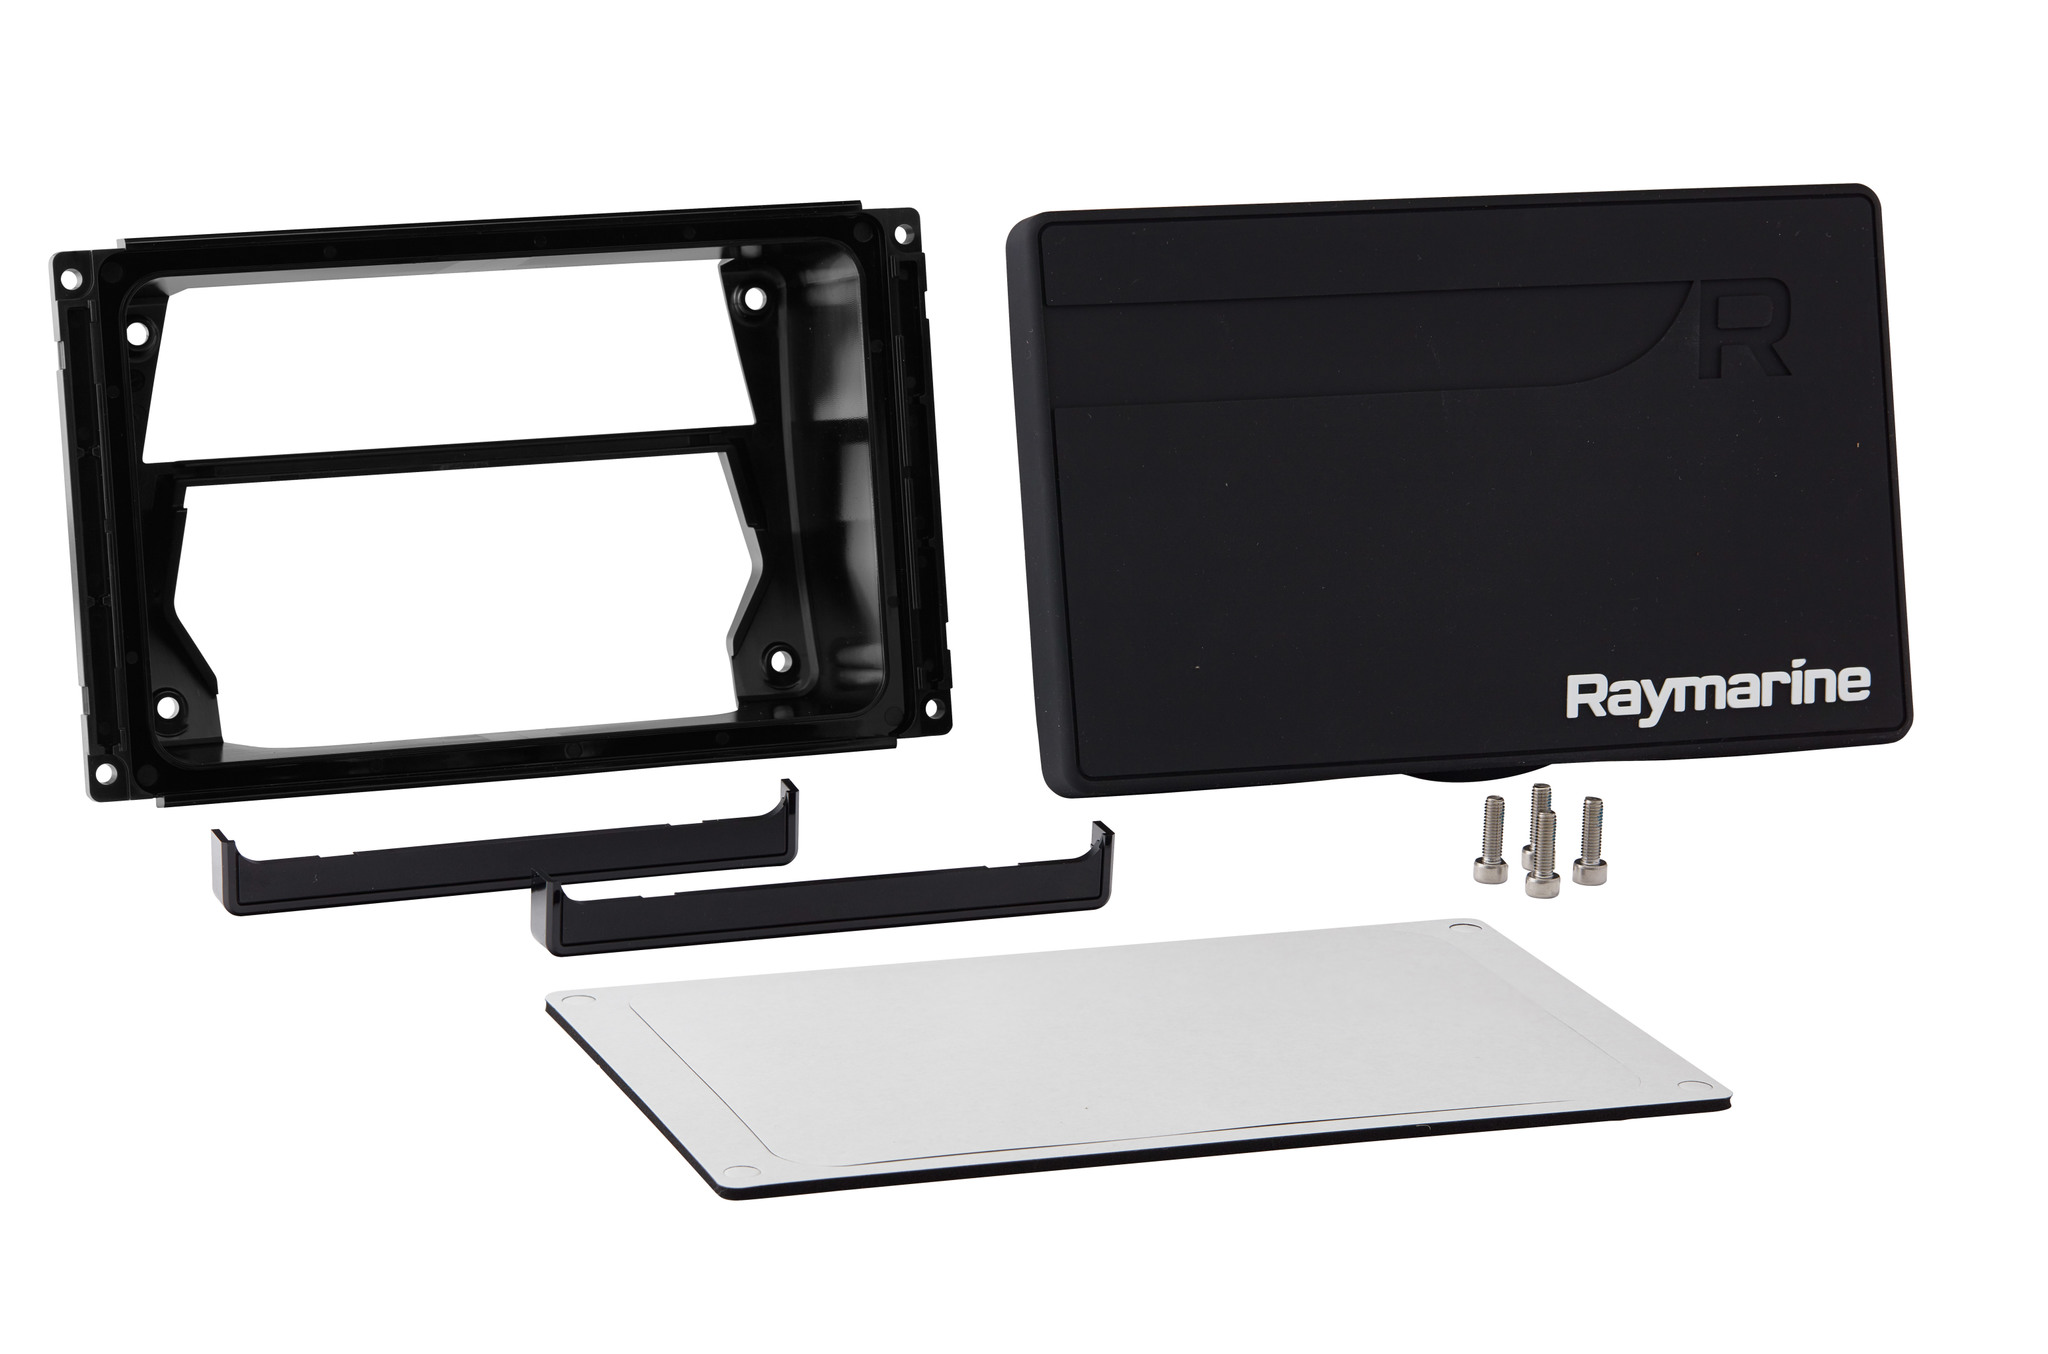 Raymarine Front Mount Kit W/Suncover for Axiom 7